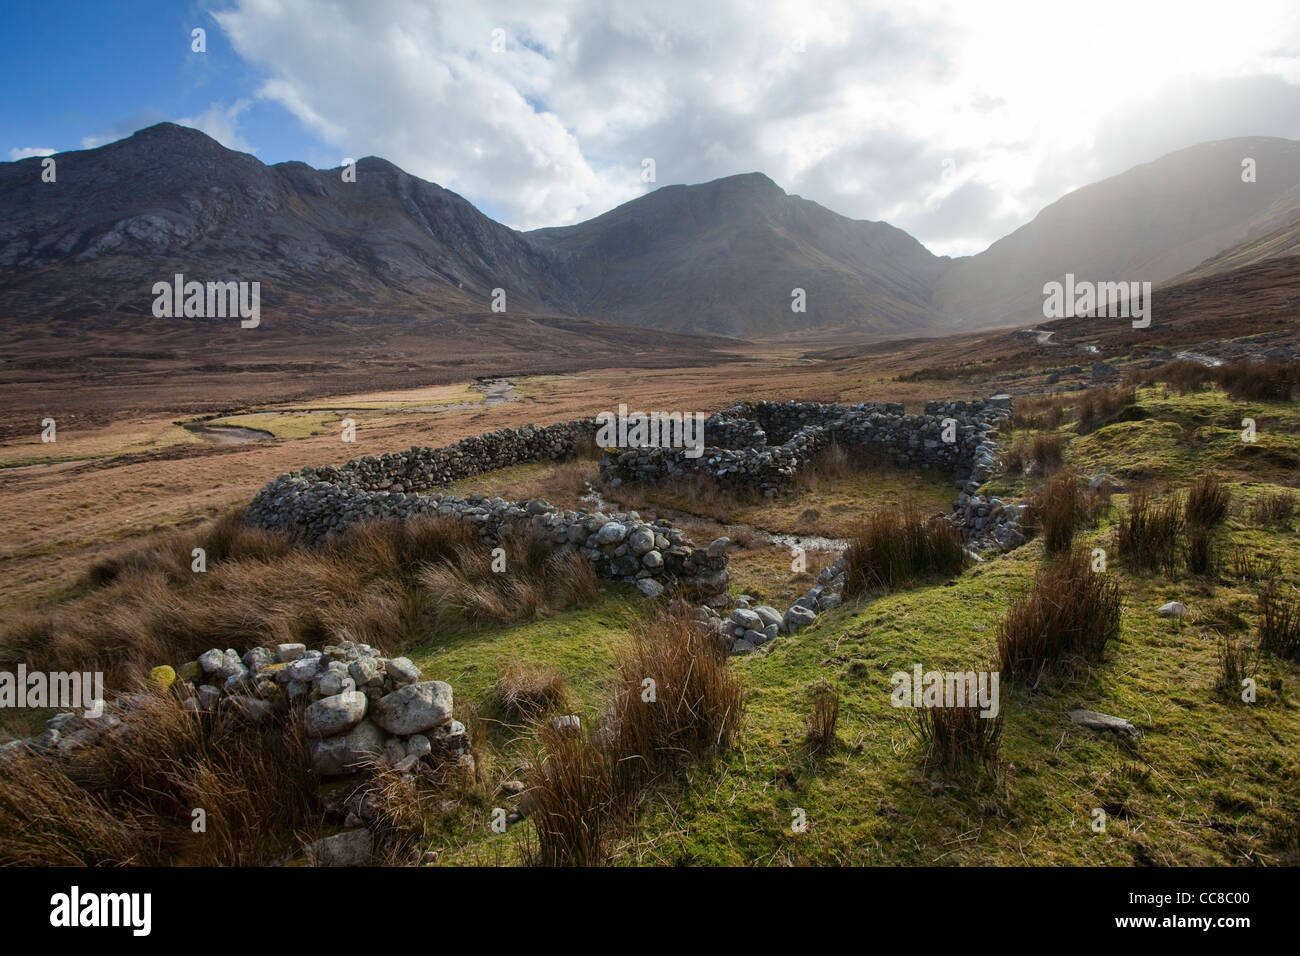 Stone farm enclosures in Gleninagh, with the Twelve Bens behind, Connemara, County Galway, Ireland. - Stock Image